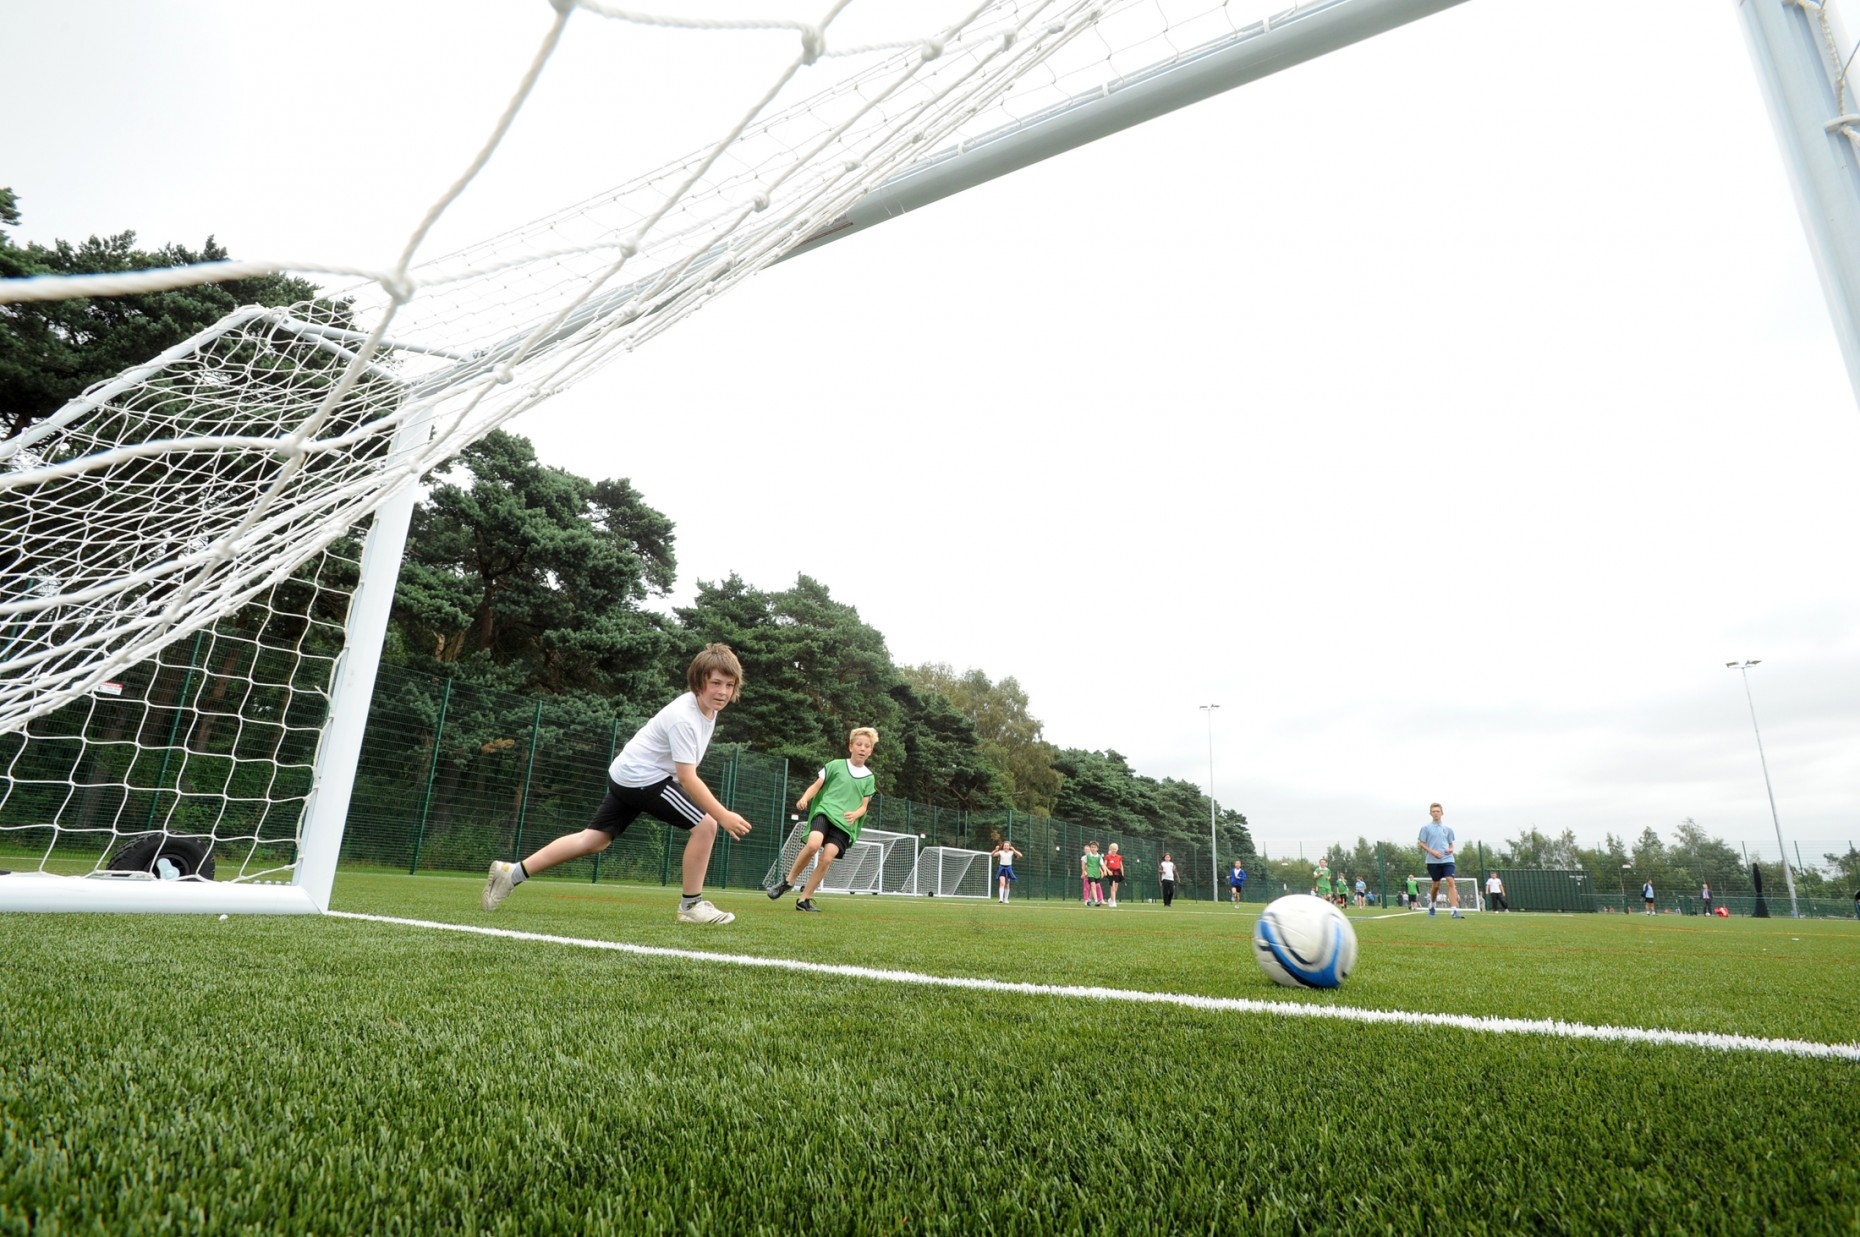 The all-weather facility, which is marked out for 11-a-side and five-a-side matches,